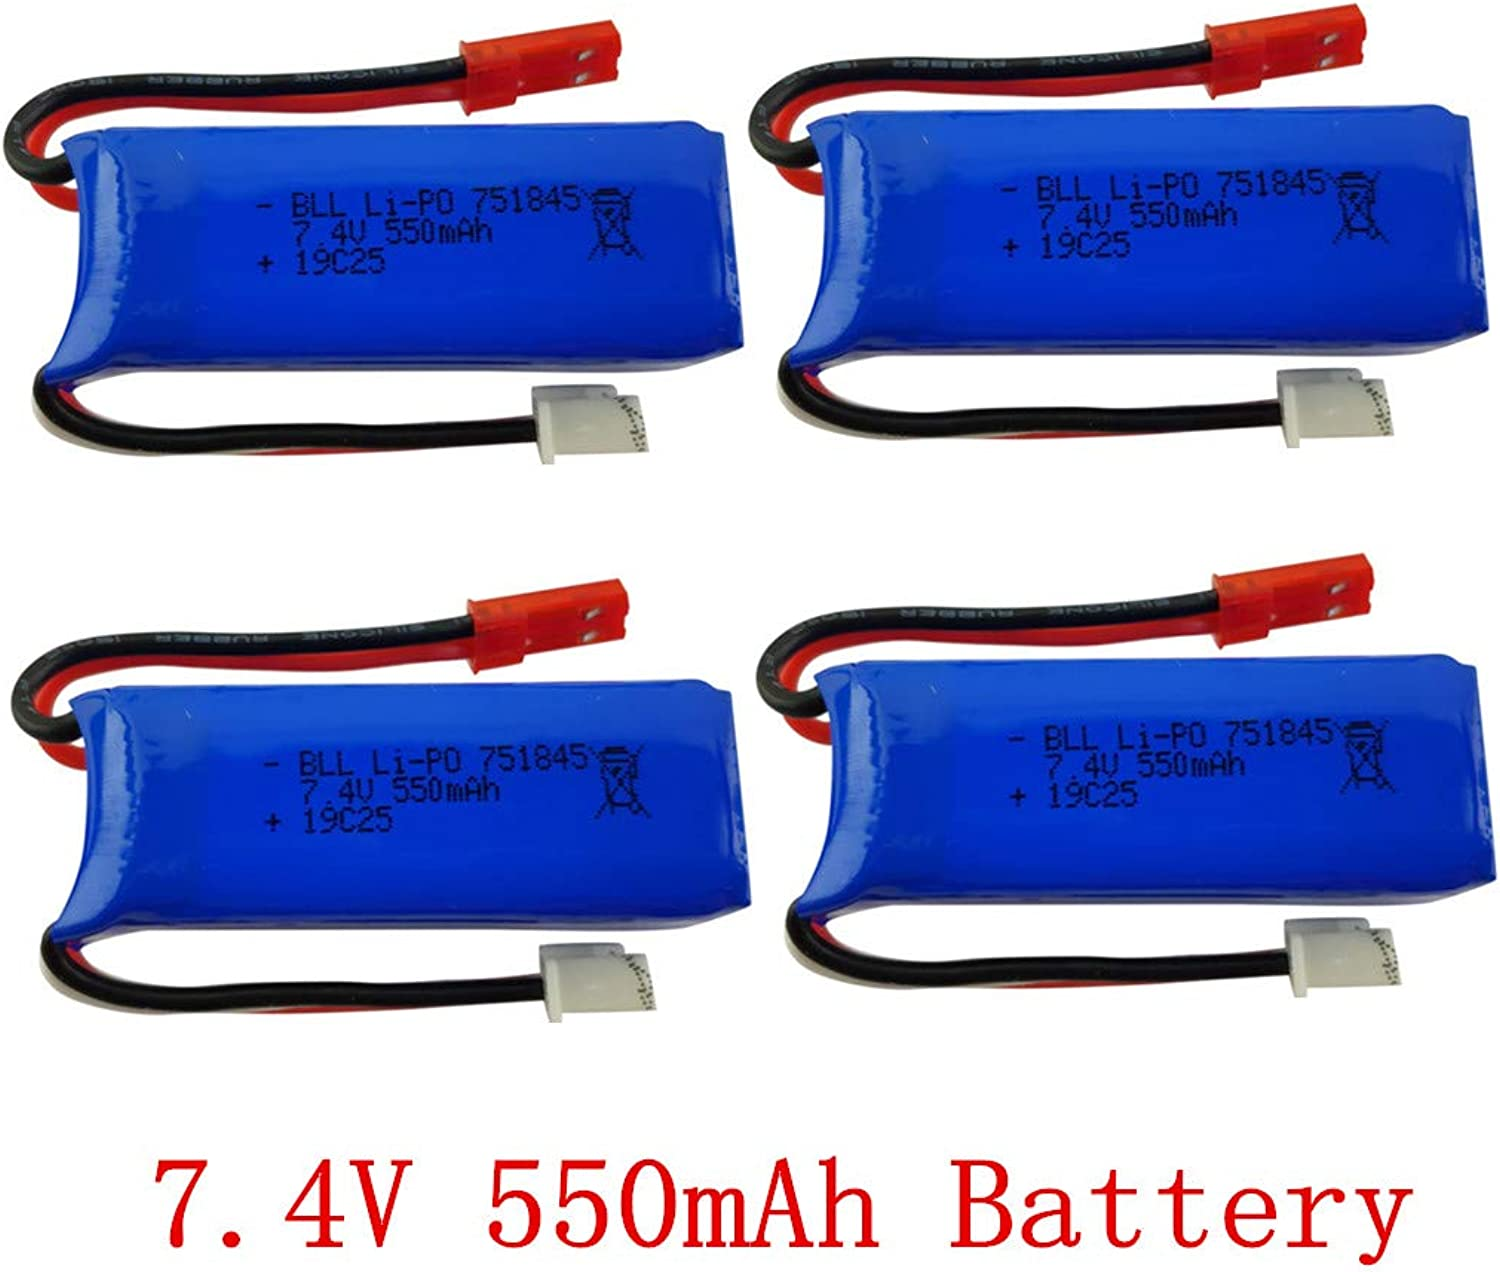 Fytoo 4pcs 7.4V 550mAh Lithium Battery for wltoys K969 K979 K989 K999 P929 P939 HighSpeed Remote Control Car Accessories High Magnification Lithium Battery